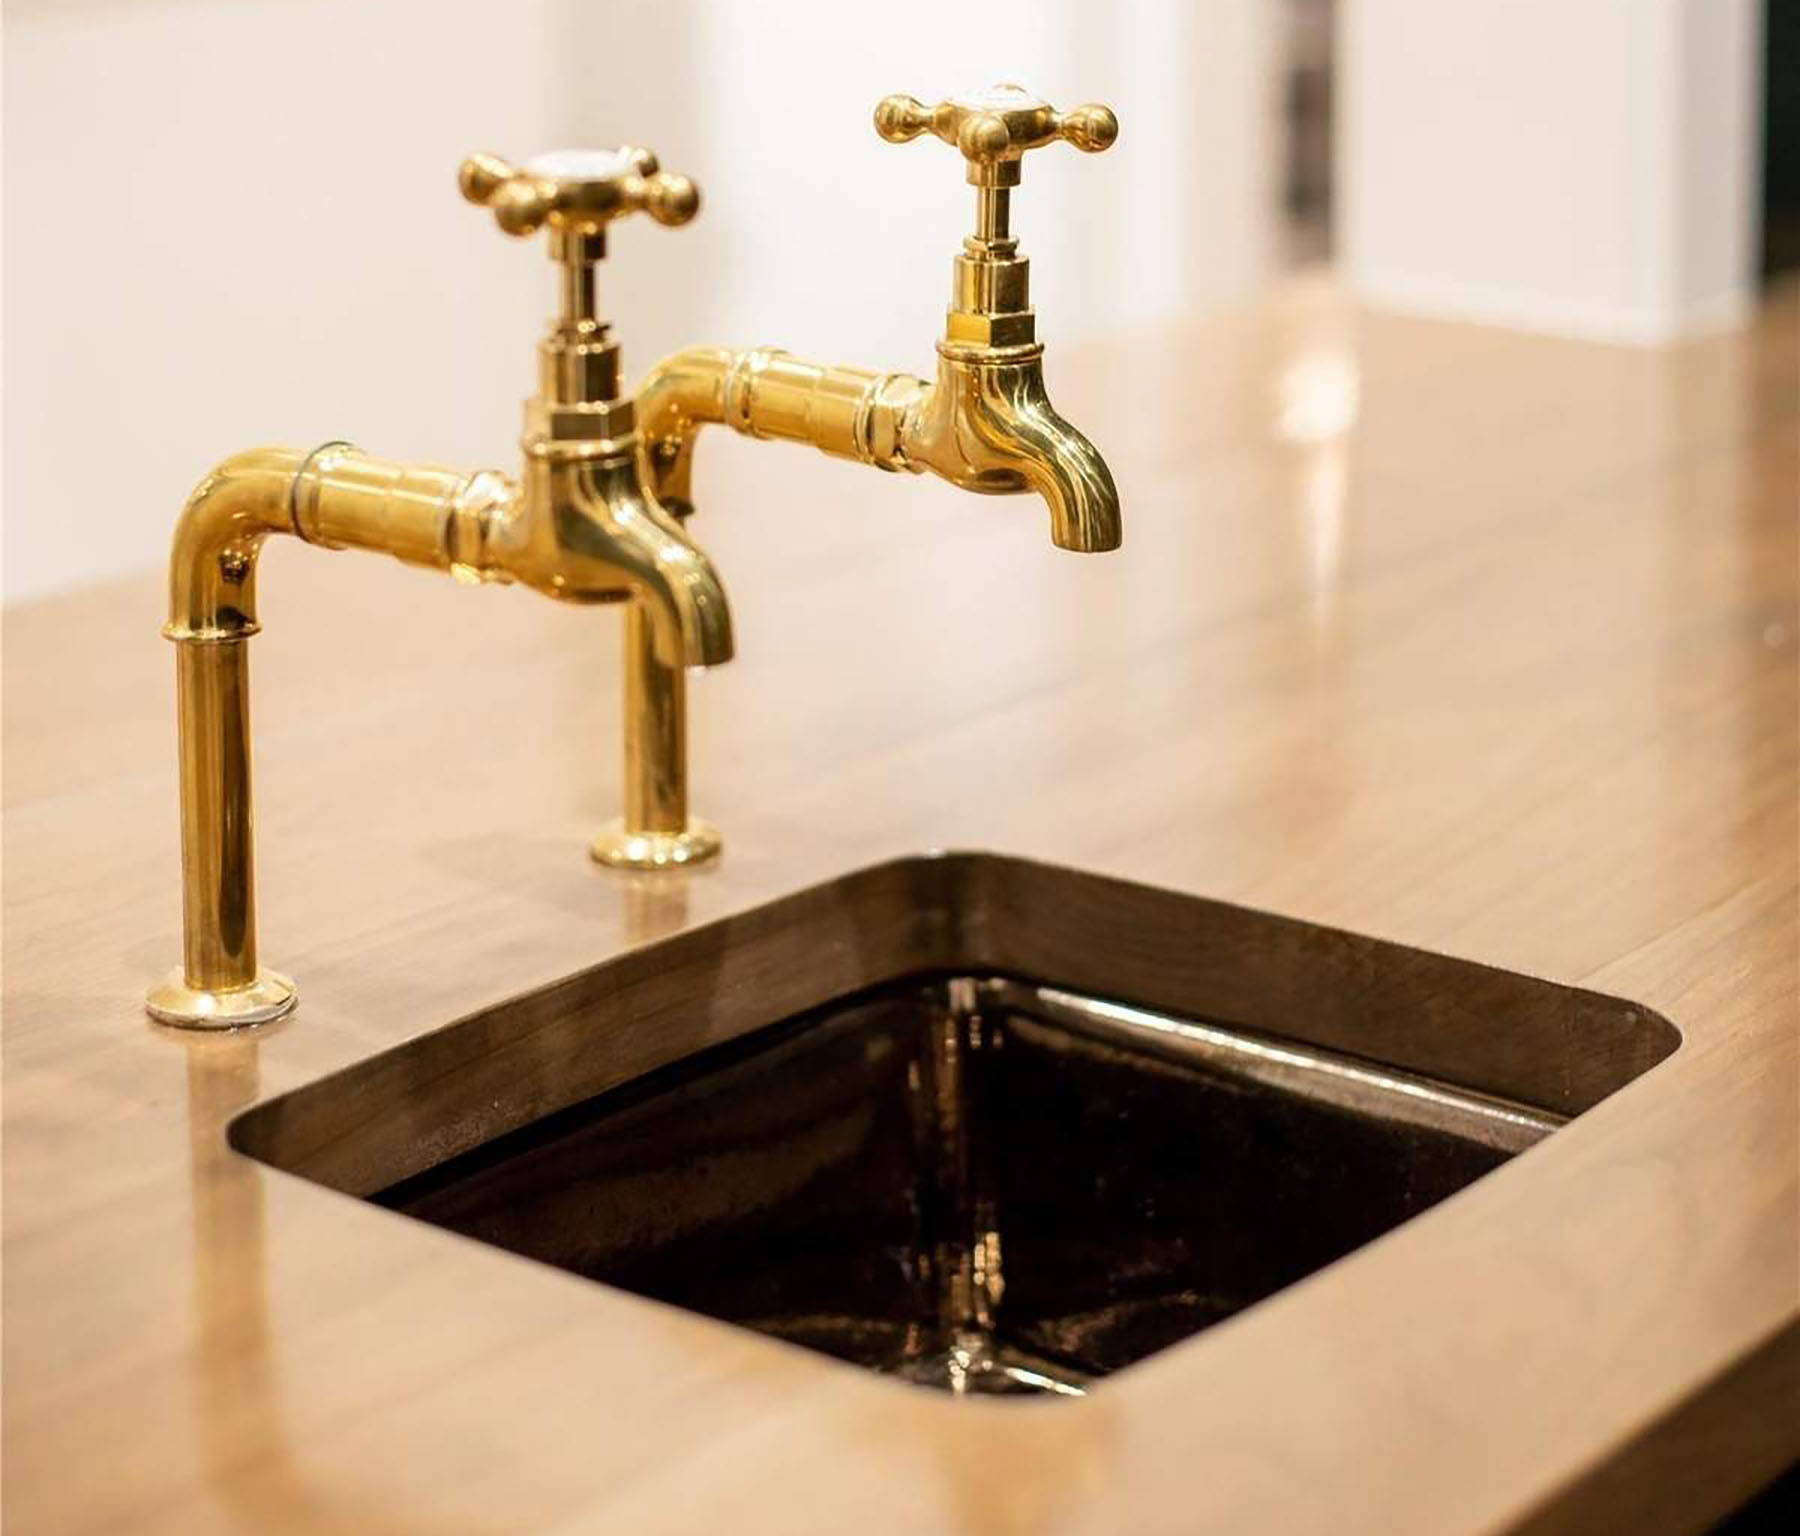 Closeup view of a small copper kitchen sink with old fashioned gold faucets.